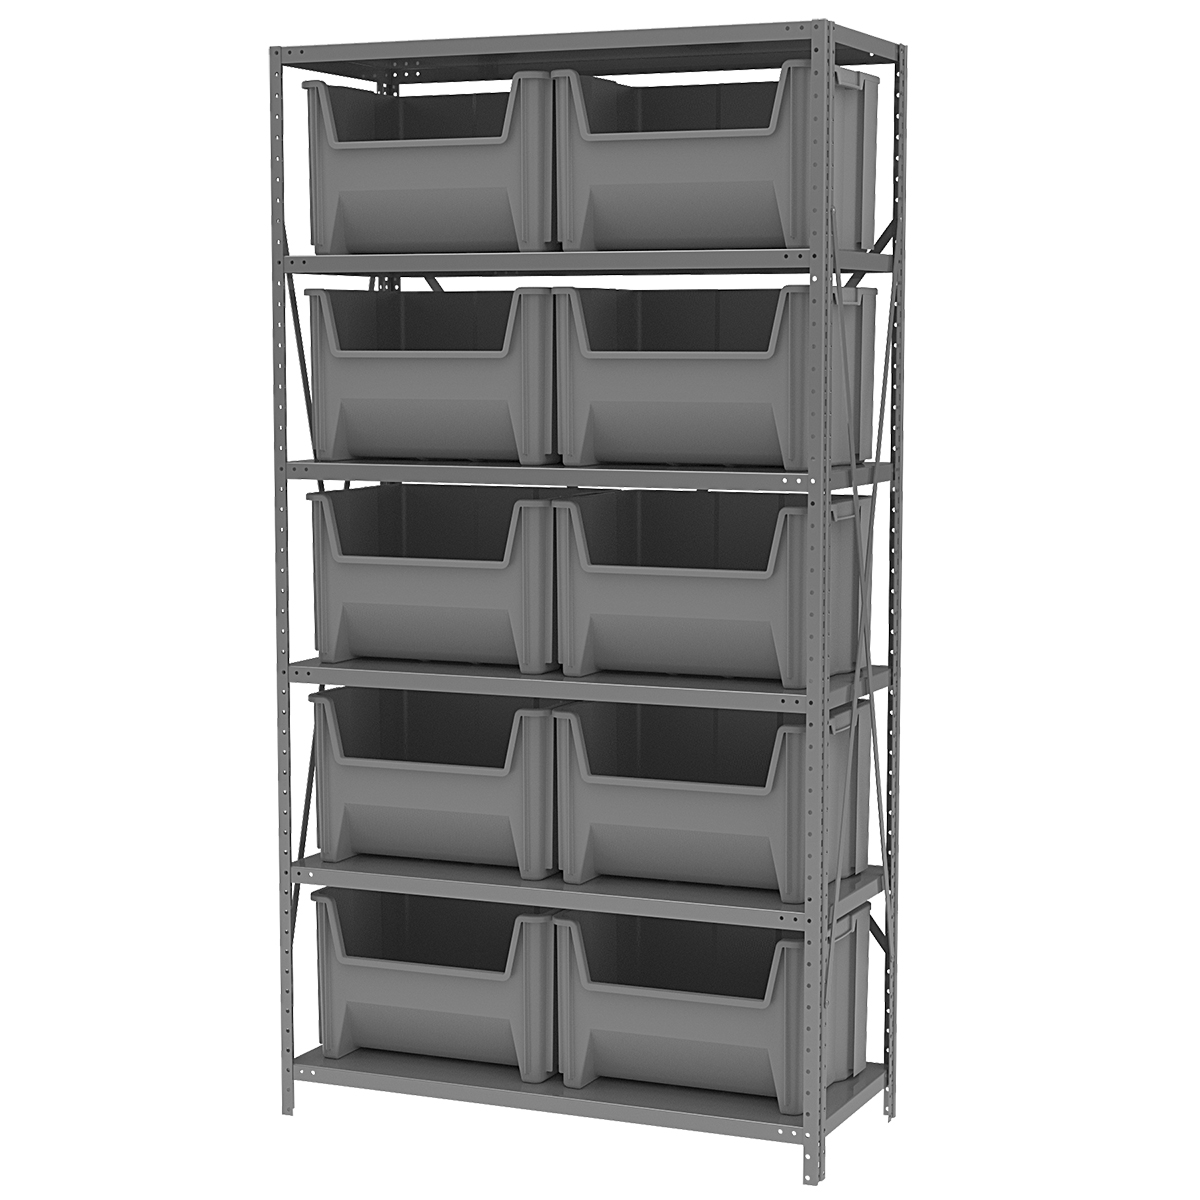 Steel Shelving Kit, 18x42x79, 10 Bins, Gray/Gray.  This item sold in carton quantities of 1.